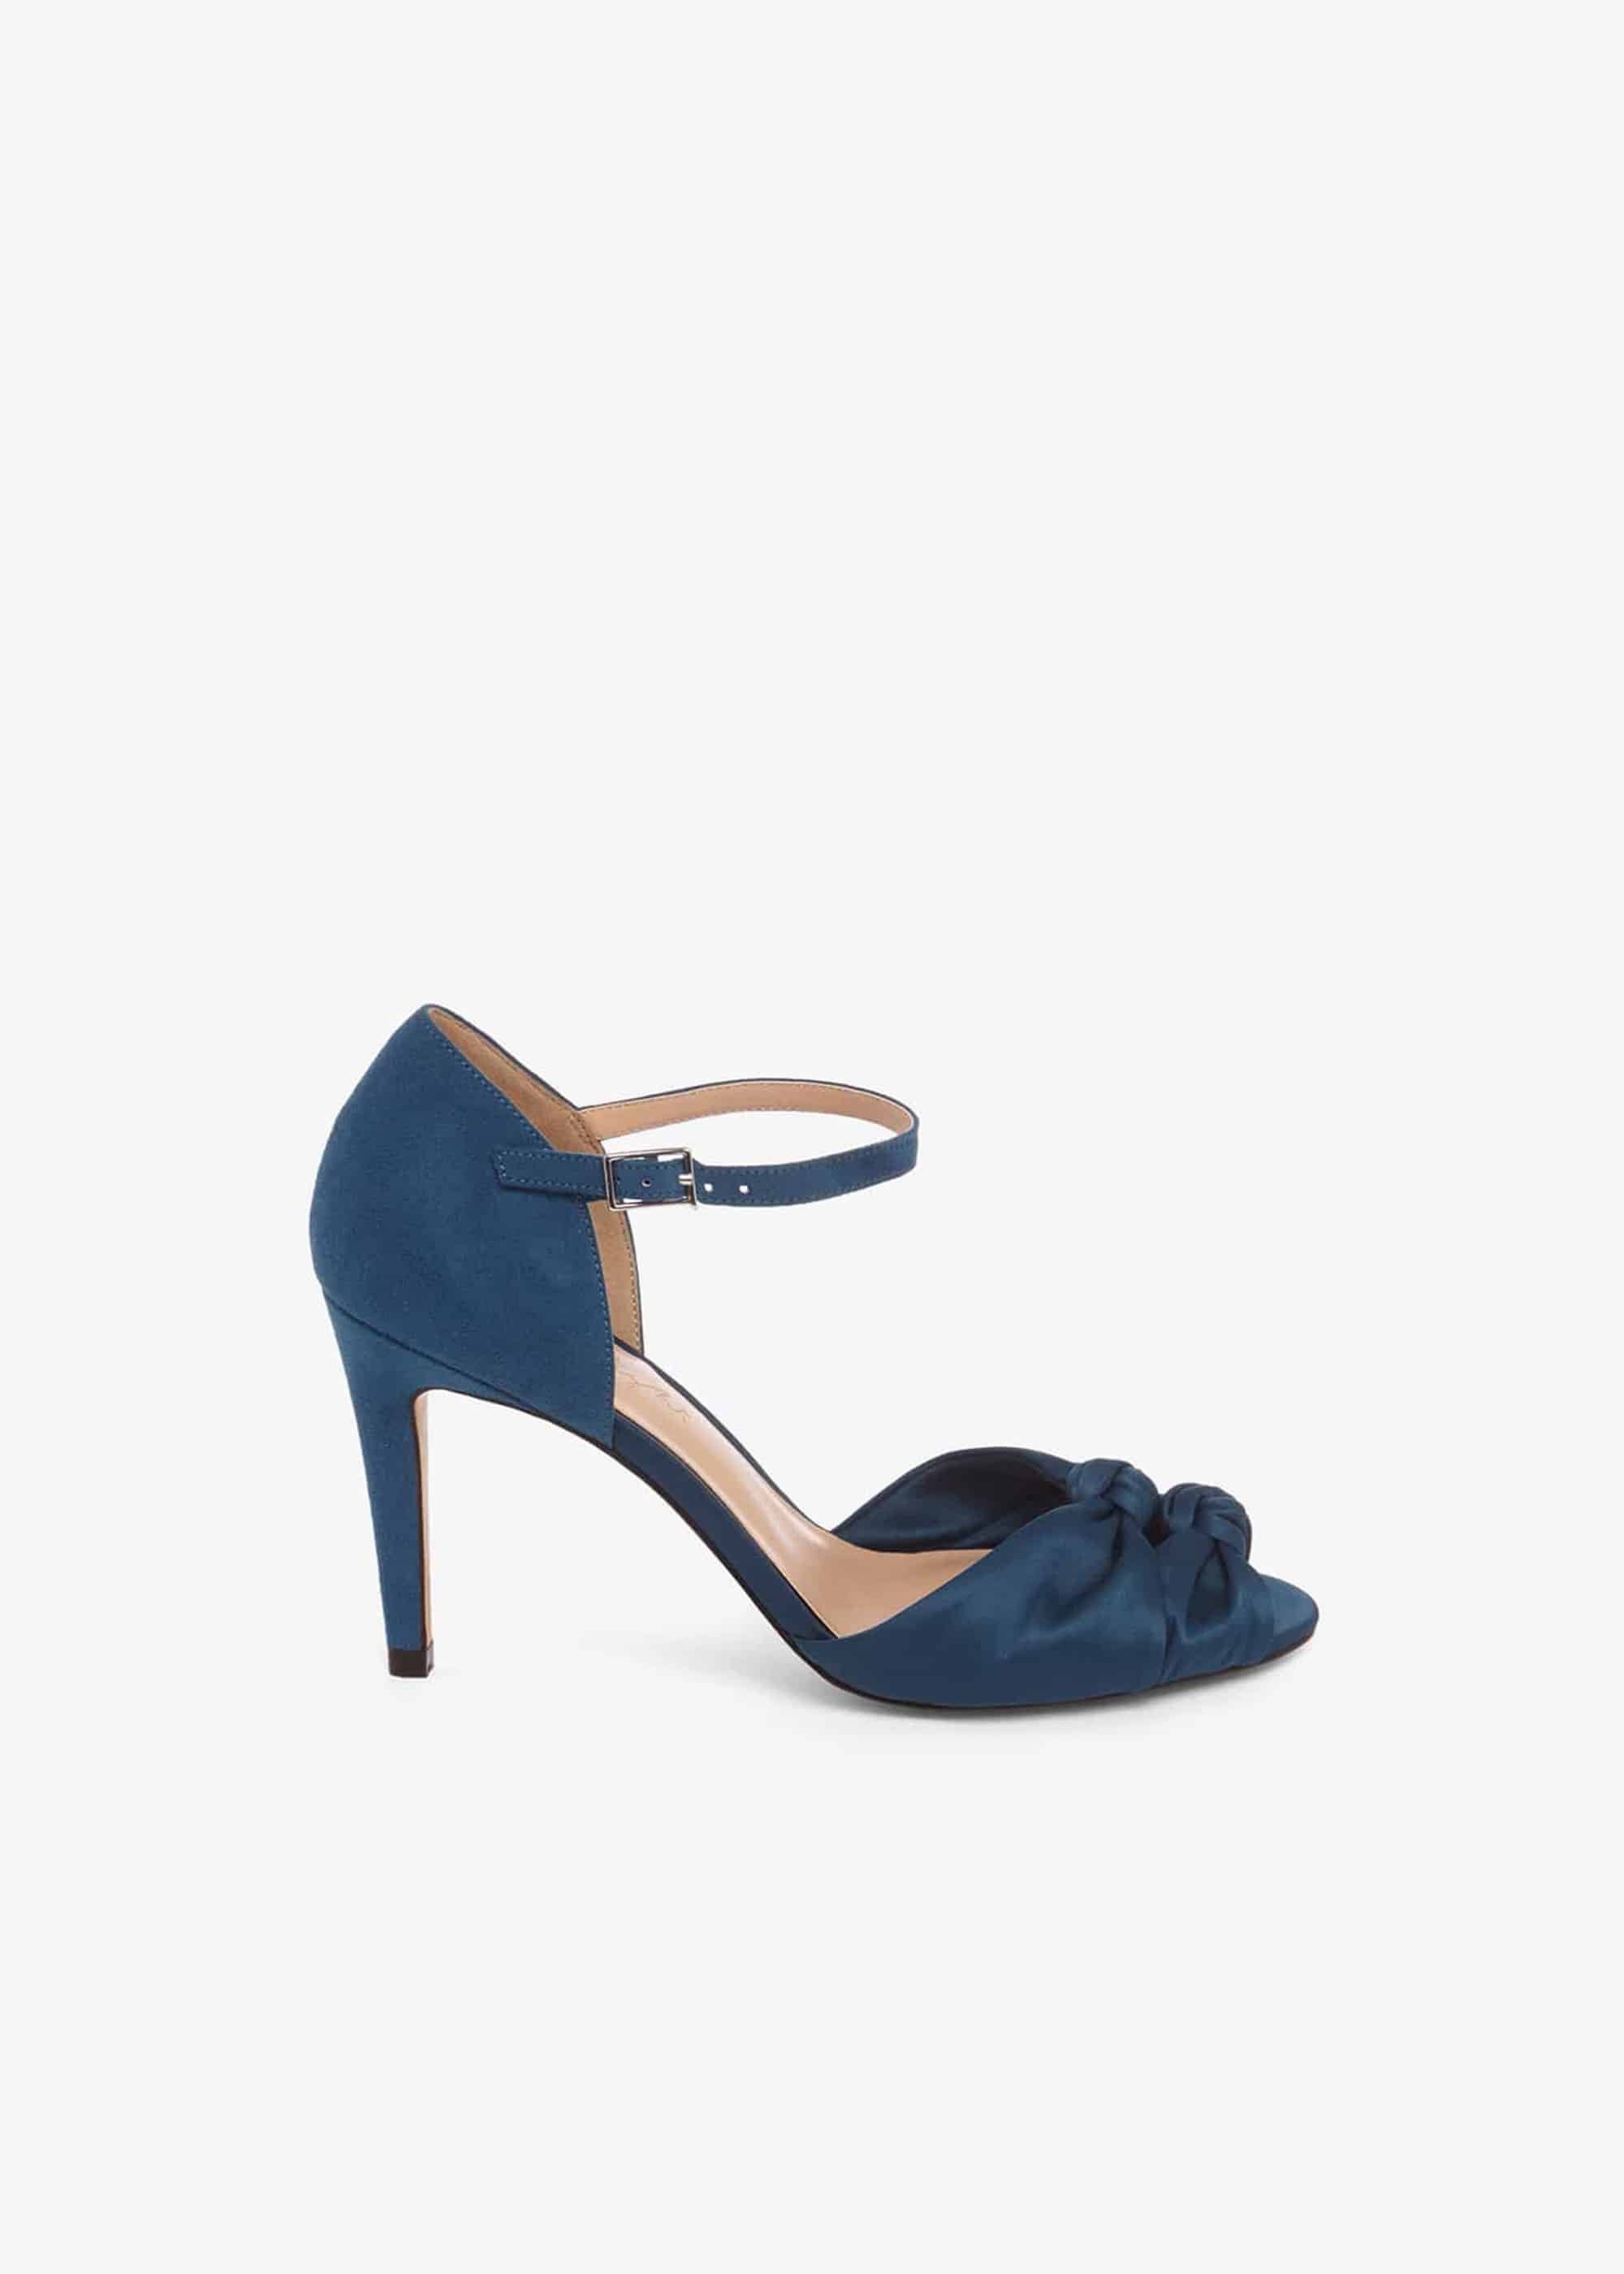 Phase Eight Bonnie Knot Peep Toe Sandals, Blue, Sandals